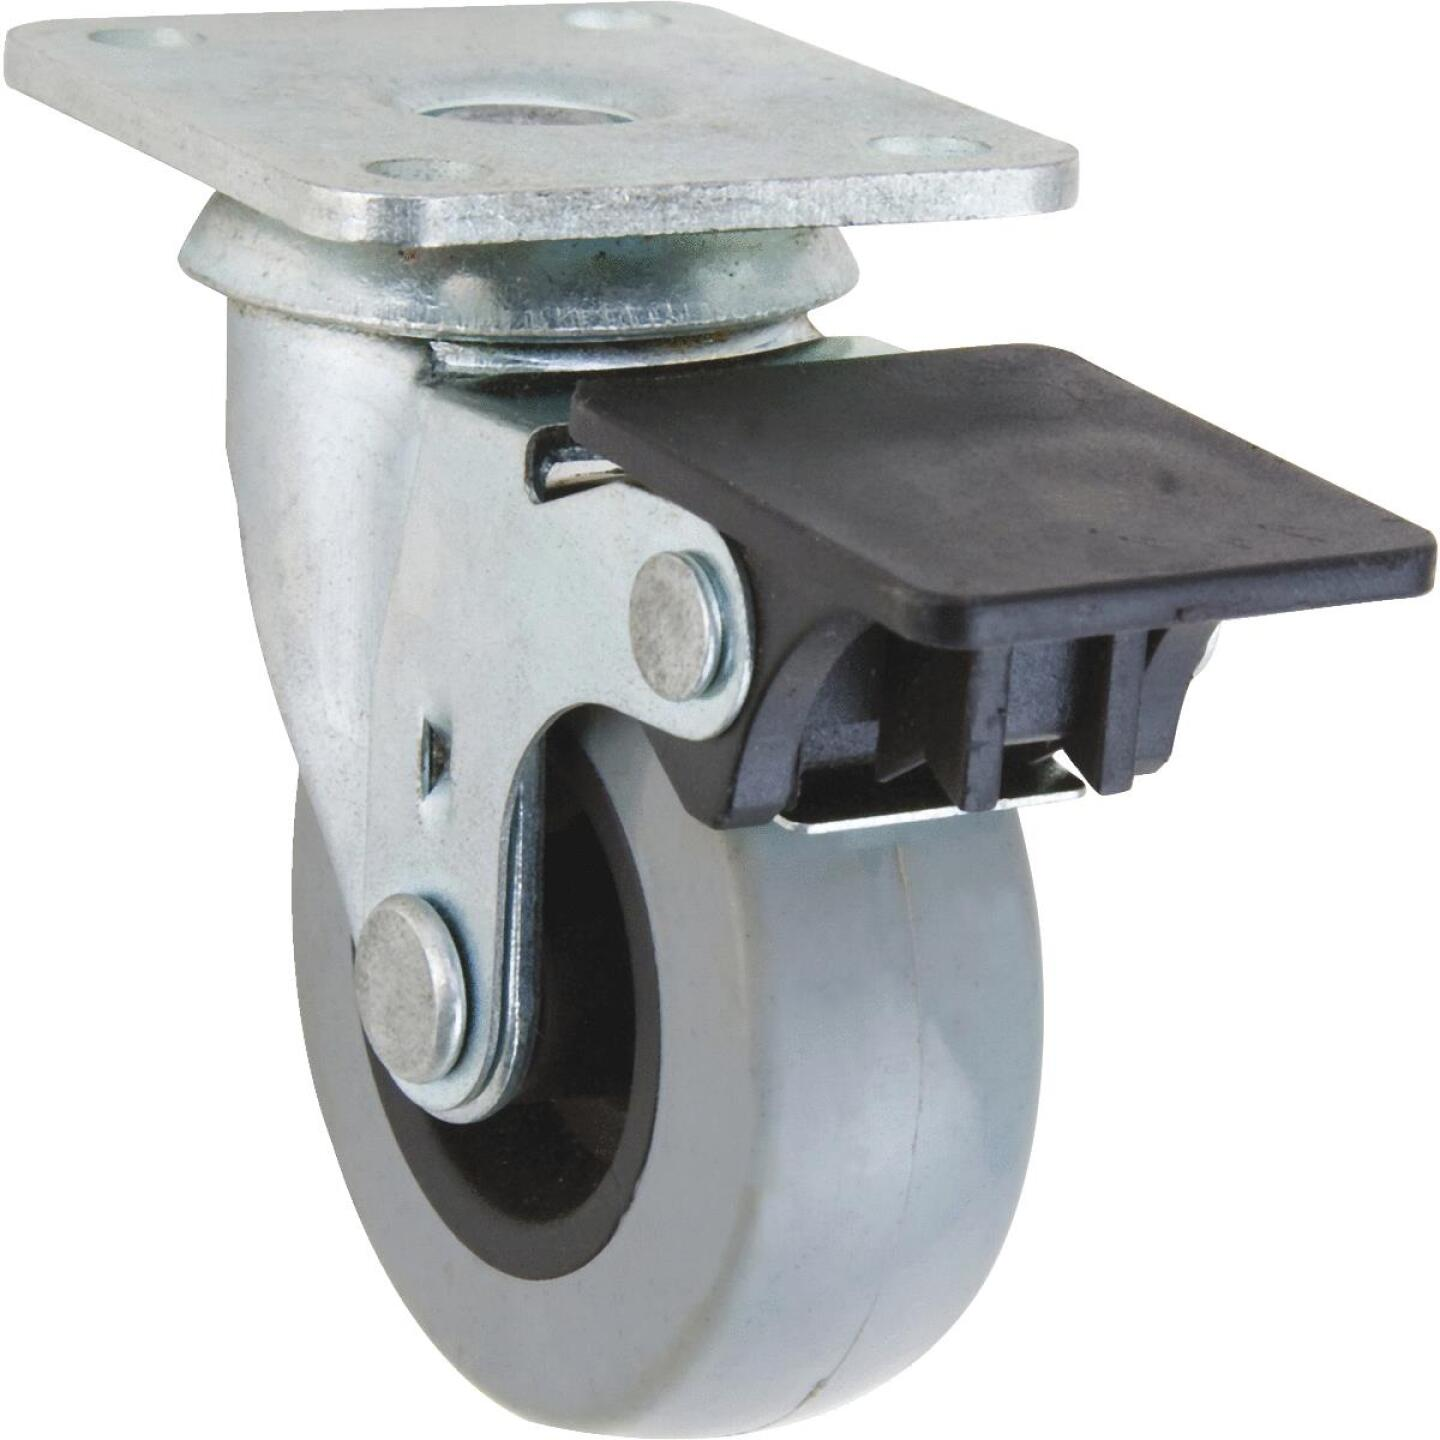 Shepherd 2 In. Thermoplastic Swivel Plate Caster with Brake Image 1